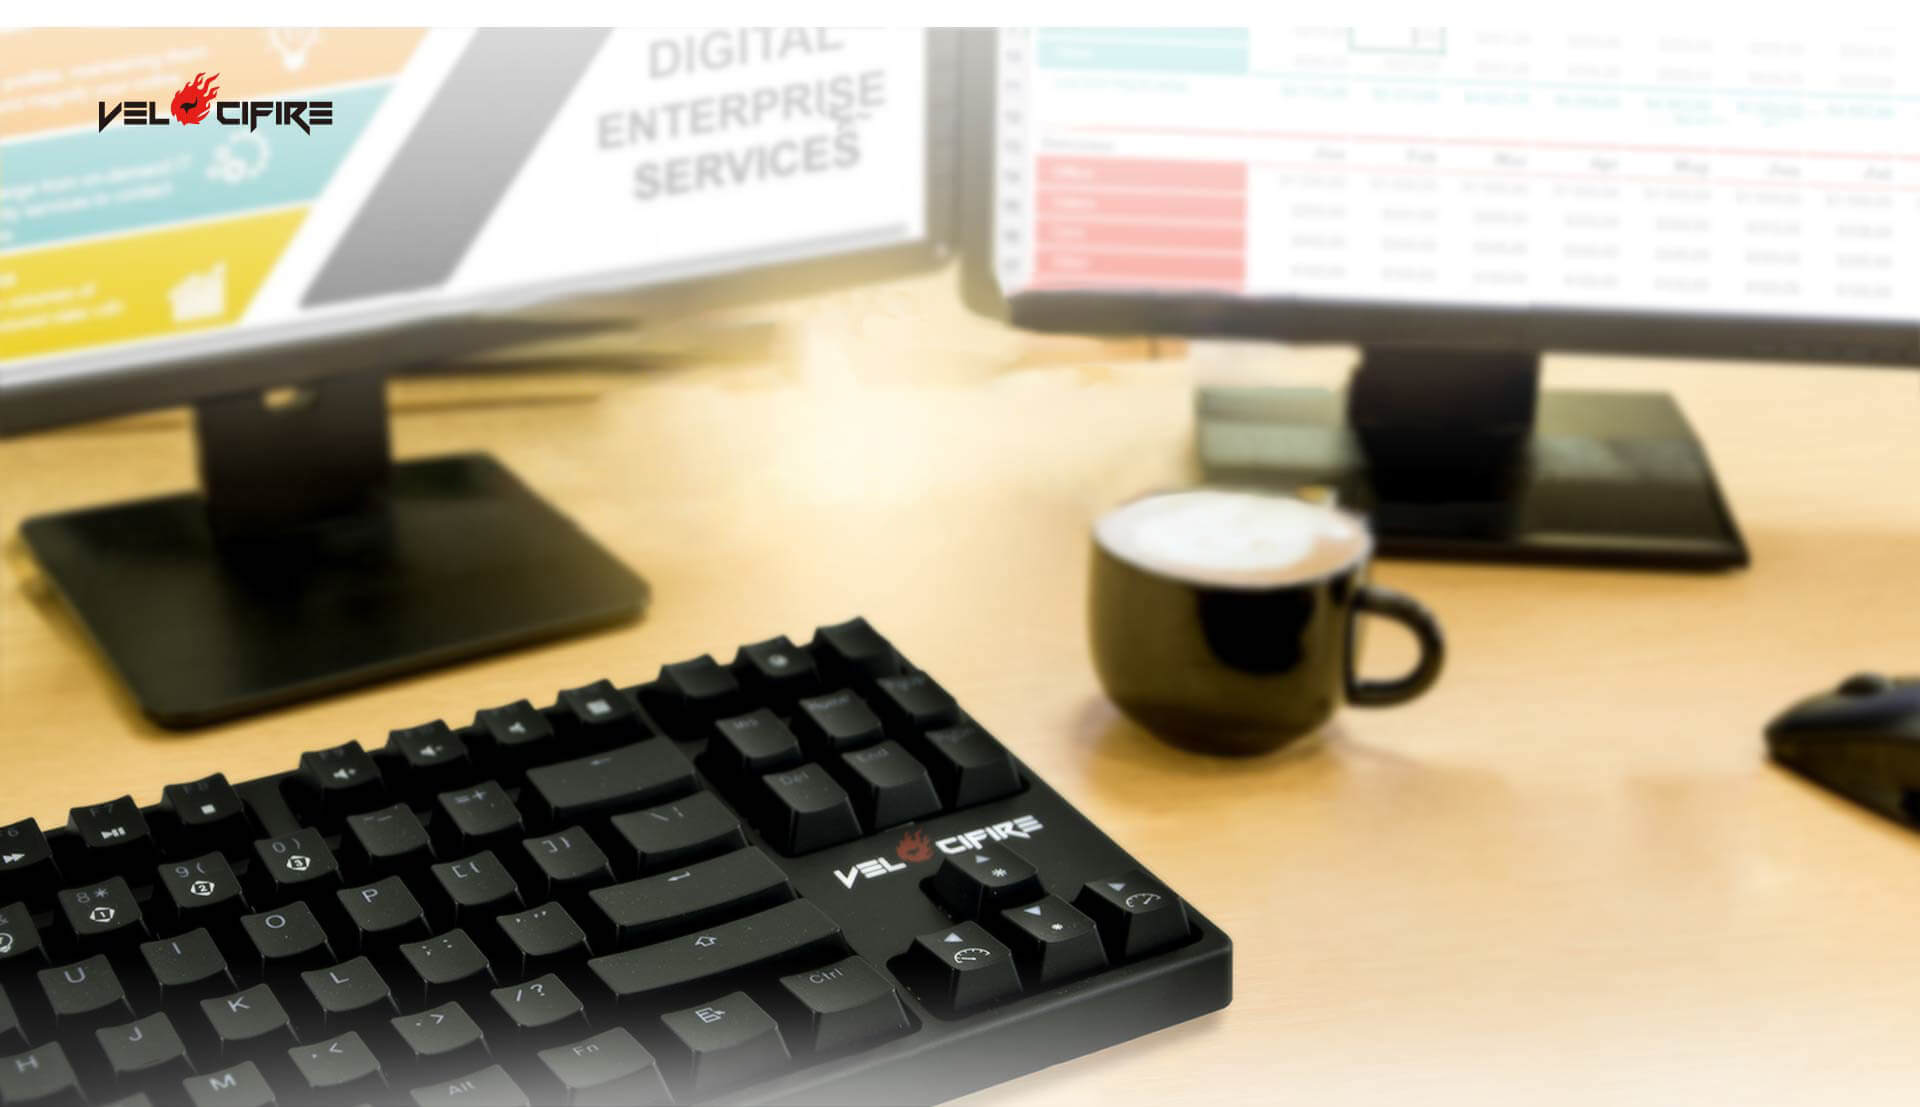 72d93f01d47 The Best Budget Mechanical Keyboard: Velocifire TKL01 Wired ...